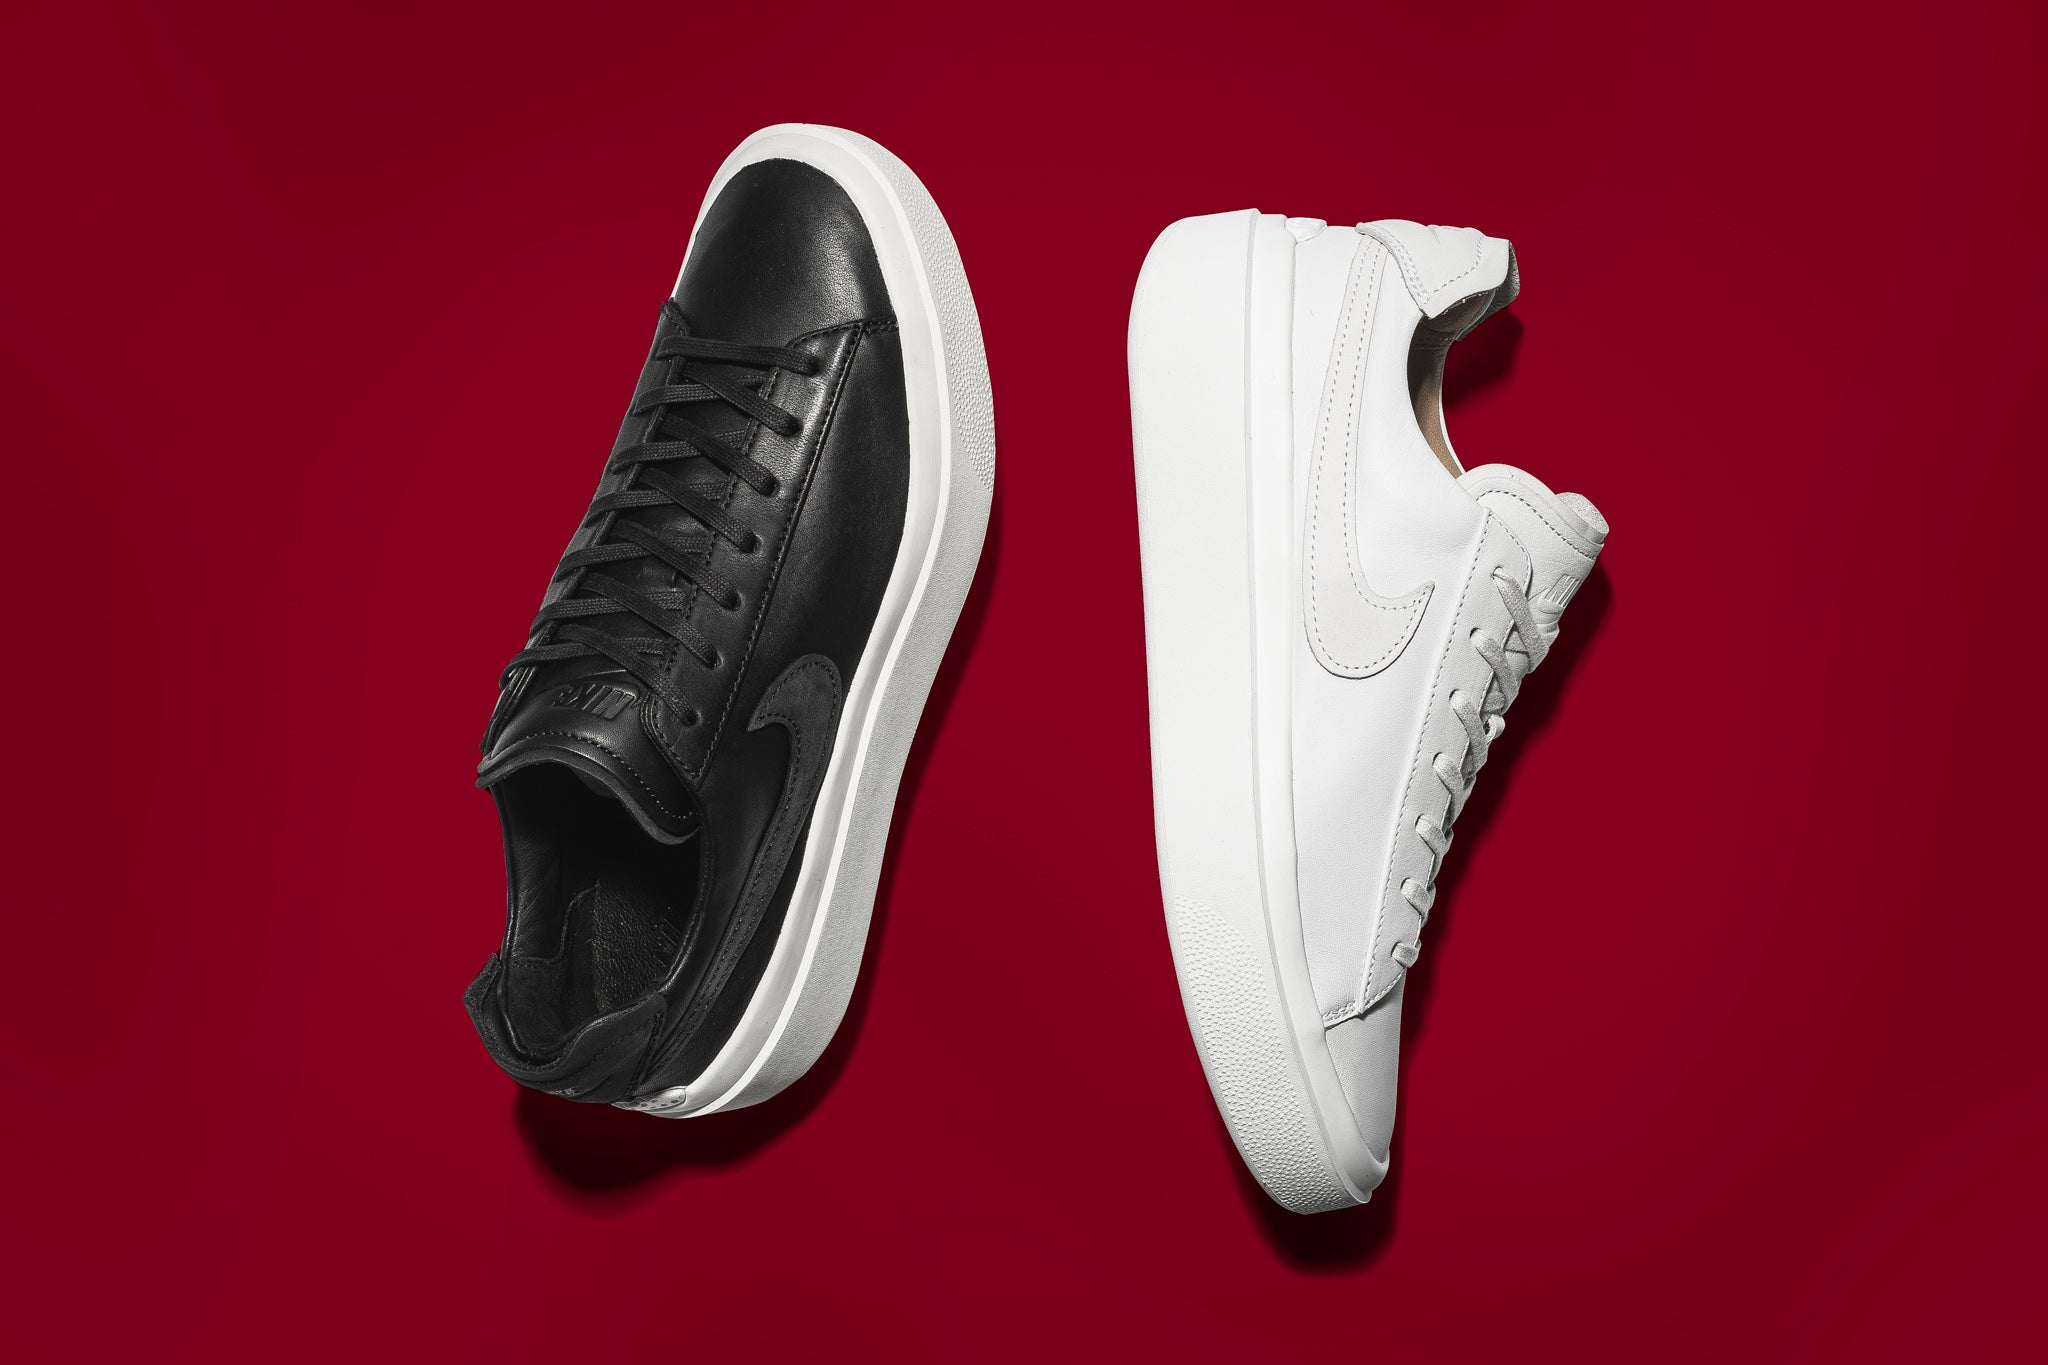 pretty nice 3b6dd 92172 Nikelab s presents a brand new silhouette, the Grand Volee, a new low top  platform model to the mix with quality materials to back up this bold  design.